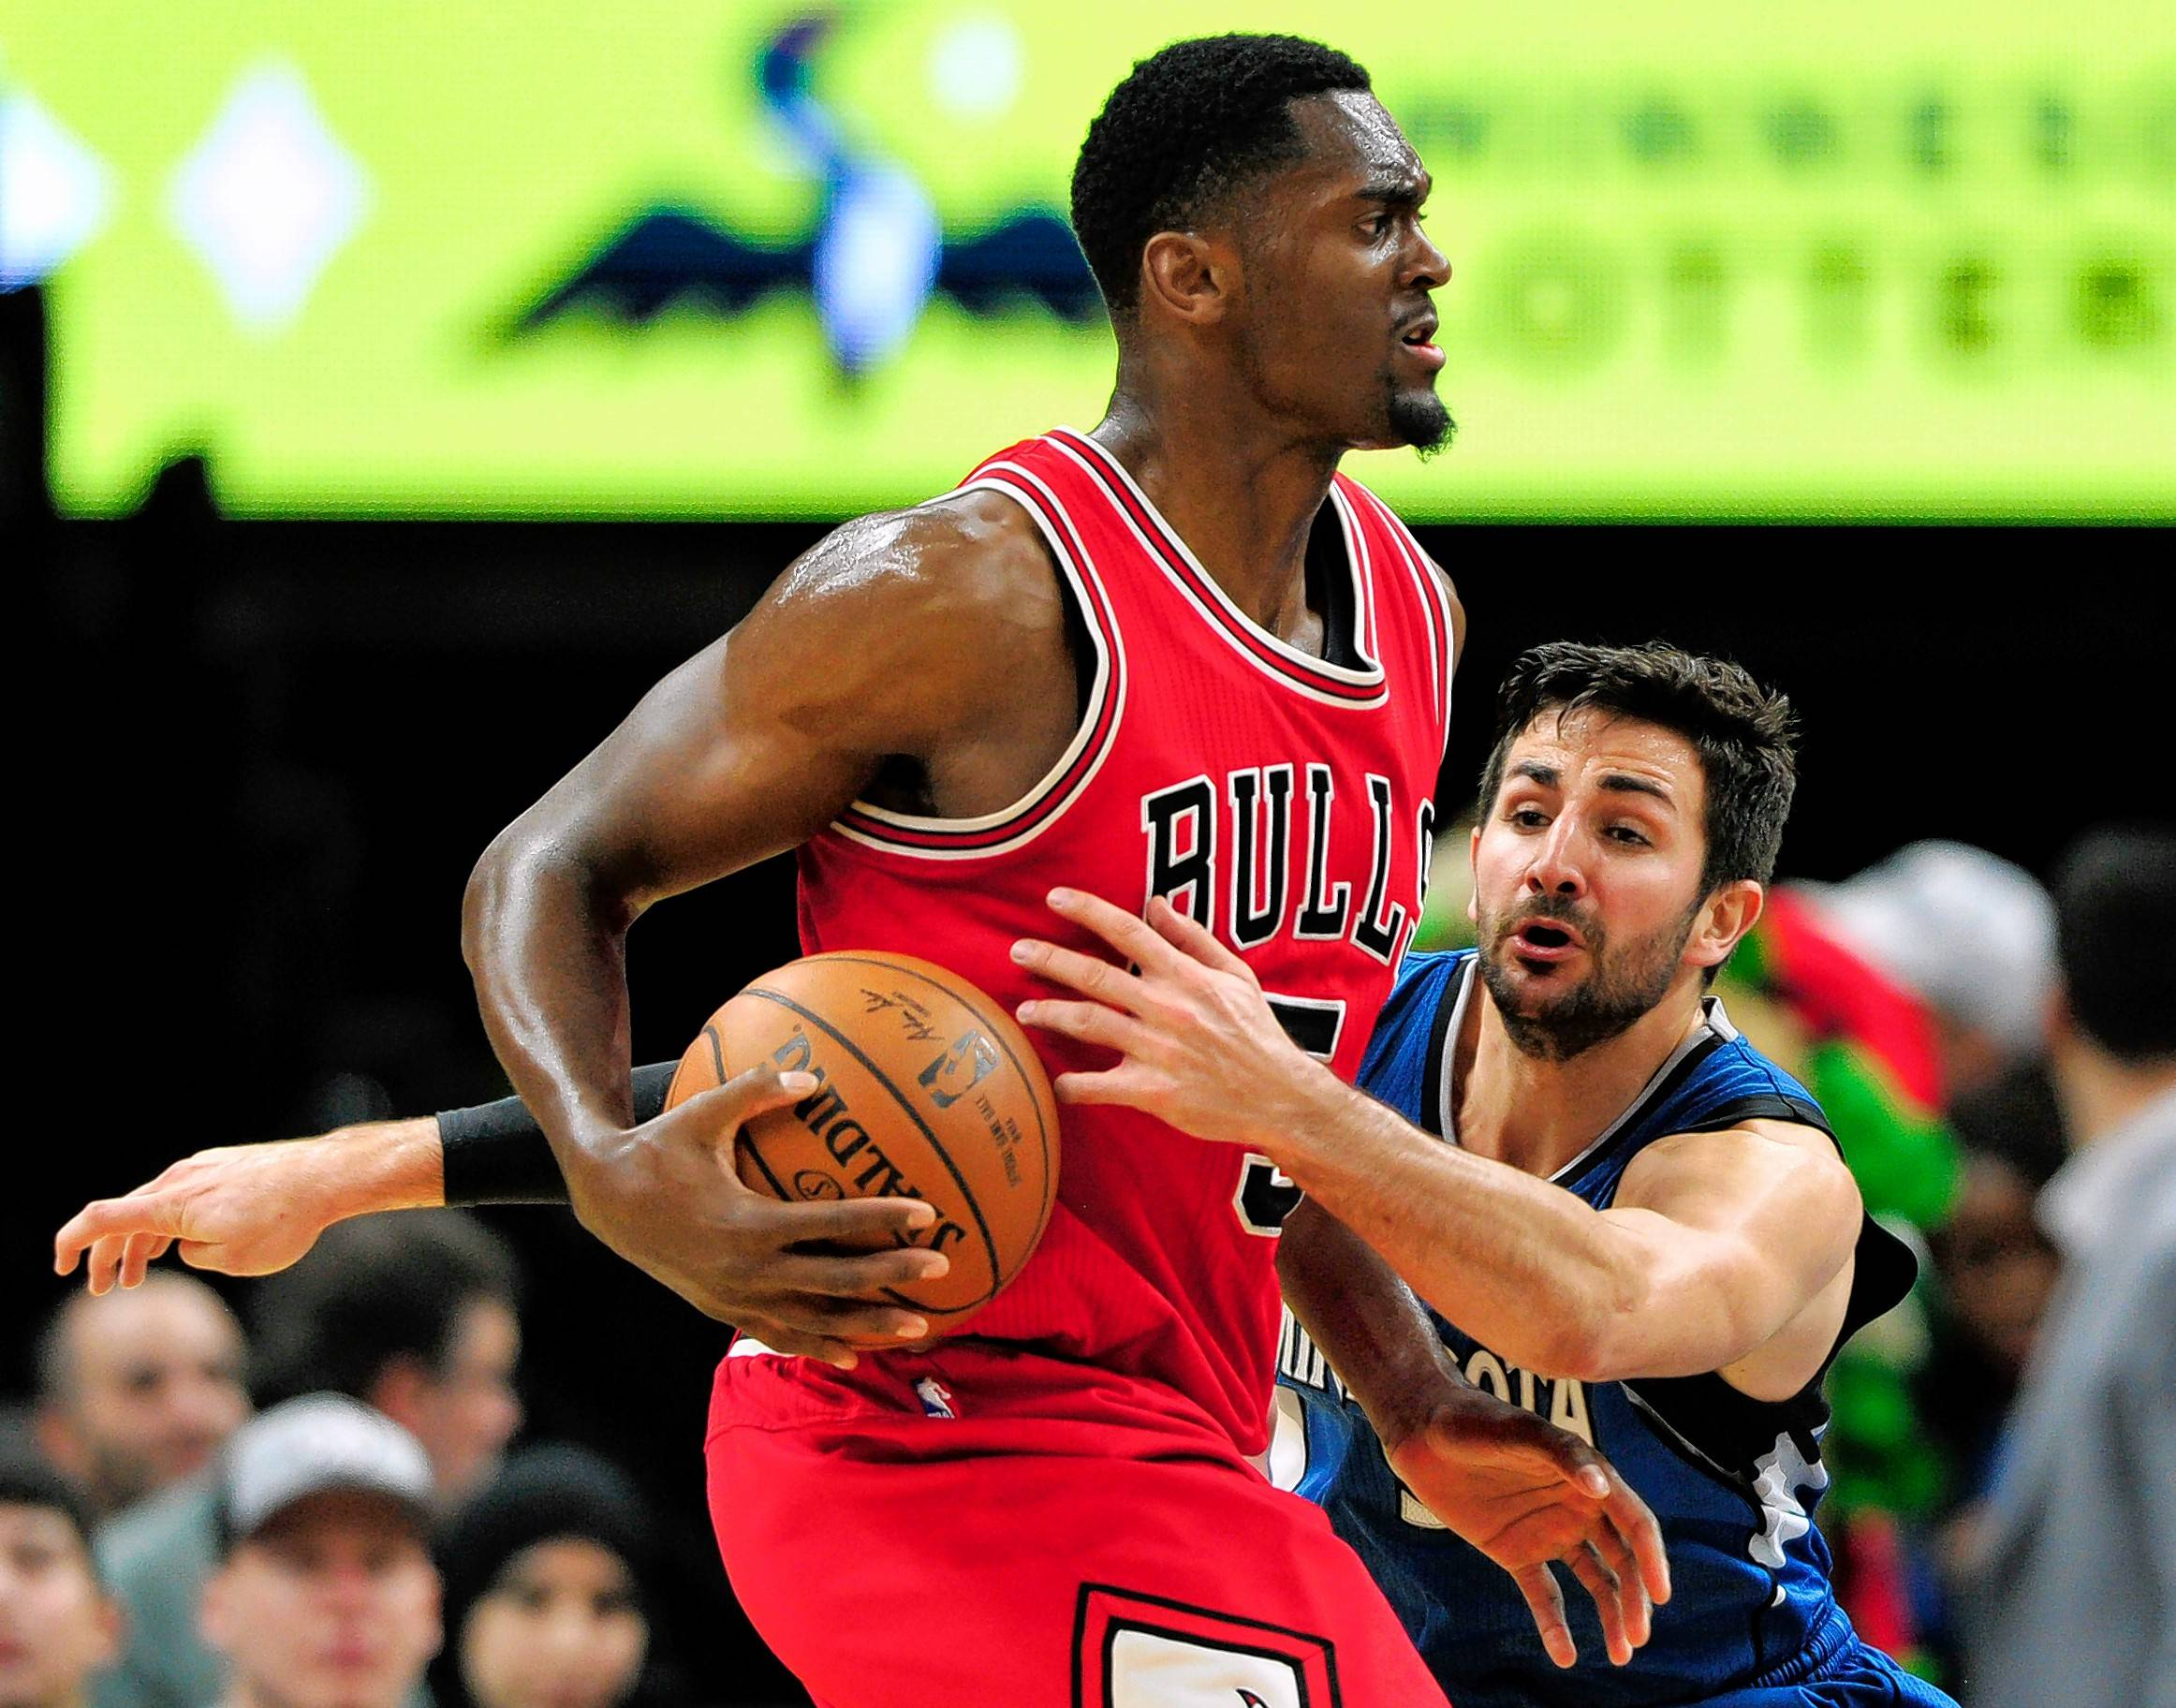 Chicago Bulls forward Bobby Portis, left, has the ball as Minnesota Timberwolves guard Ricky Rubio, of Spain, reaches during the fourth quarter of an NBA basketball game on Sunday, Feb. 12, 2017, in Minneapolis. The Timberwolves won 117-89. (AP Photo/Hannah Foslien)